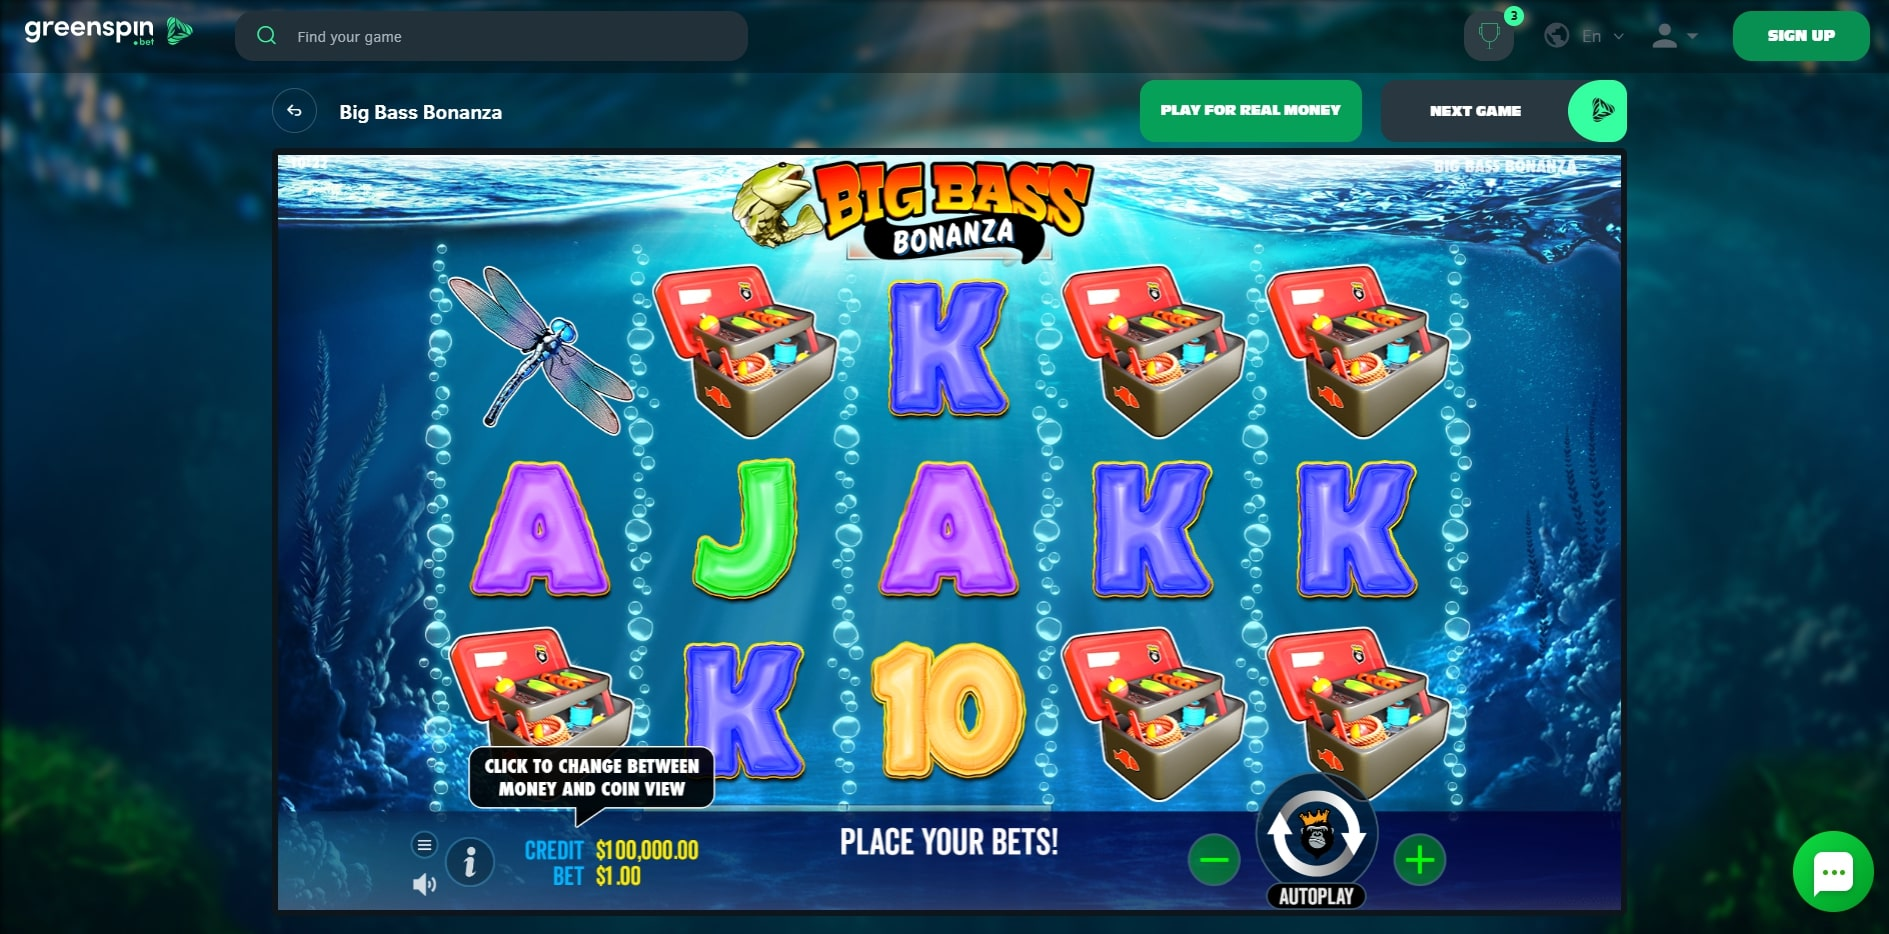 Greenspin Casino Slot Games